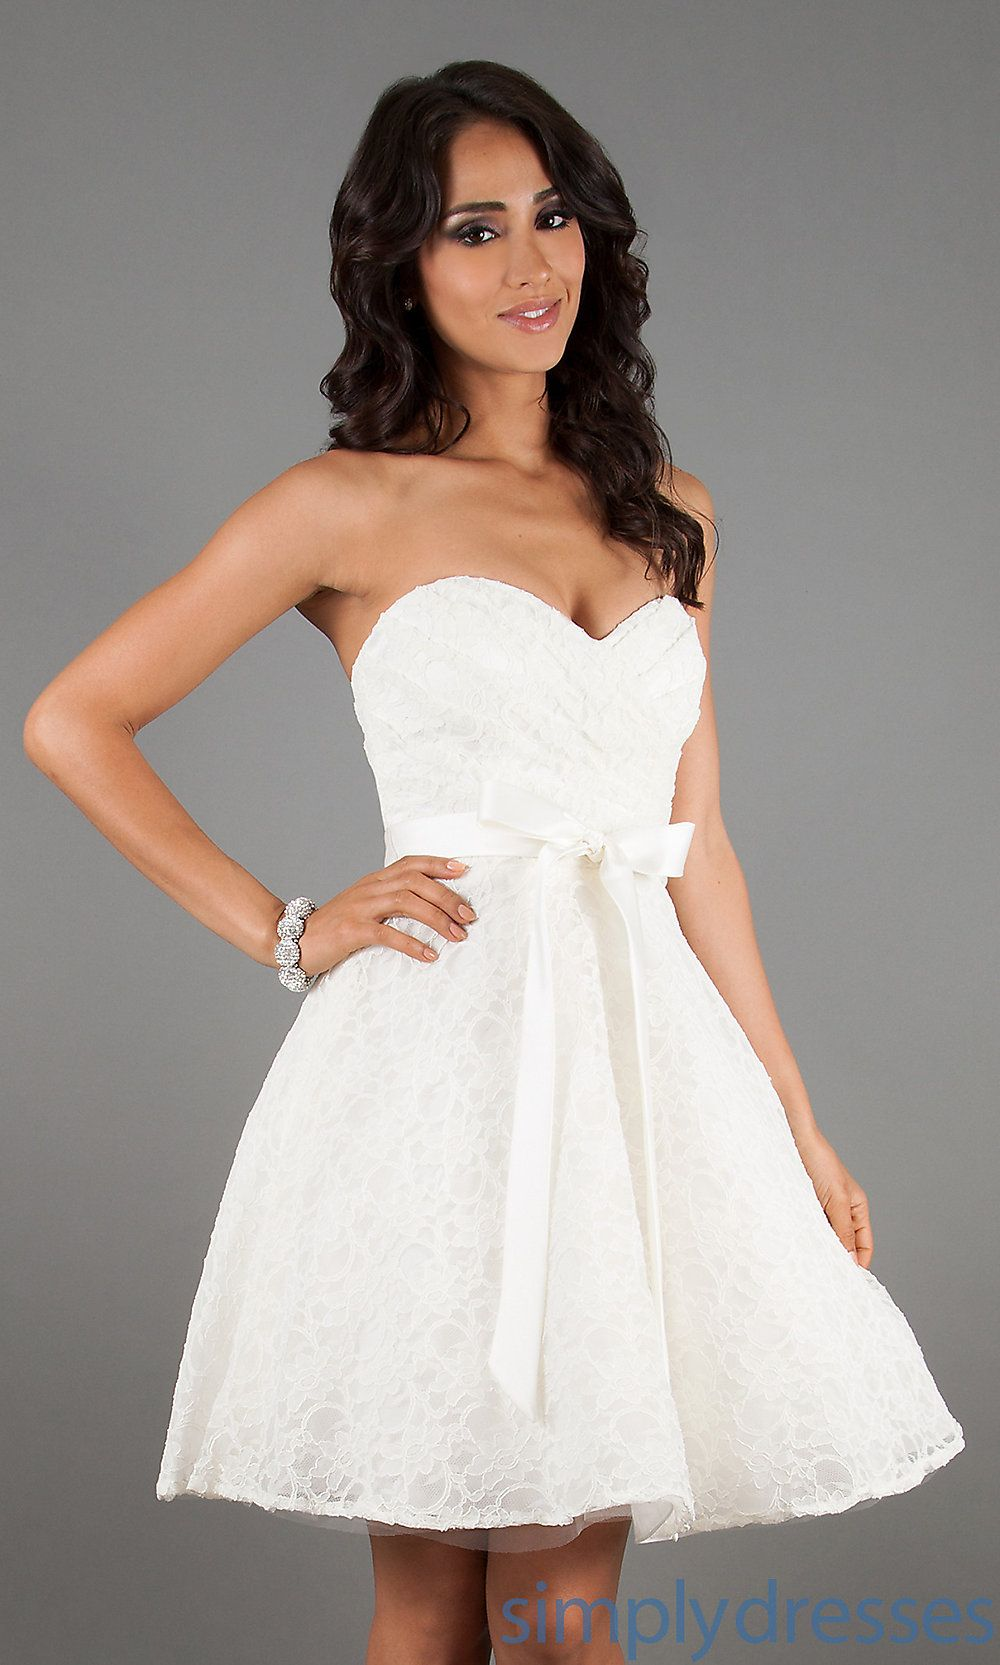 Dress, Short Strapless Sweetheart Lace Dress Simply